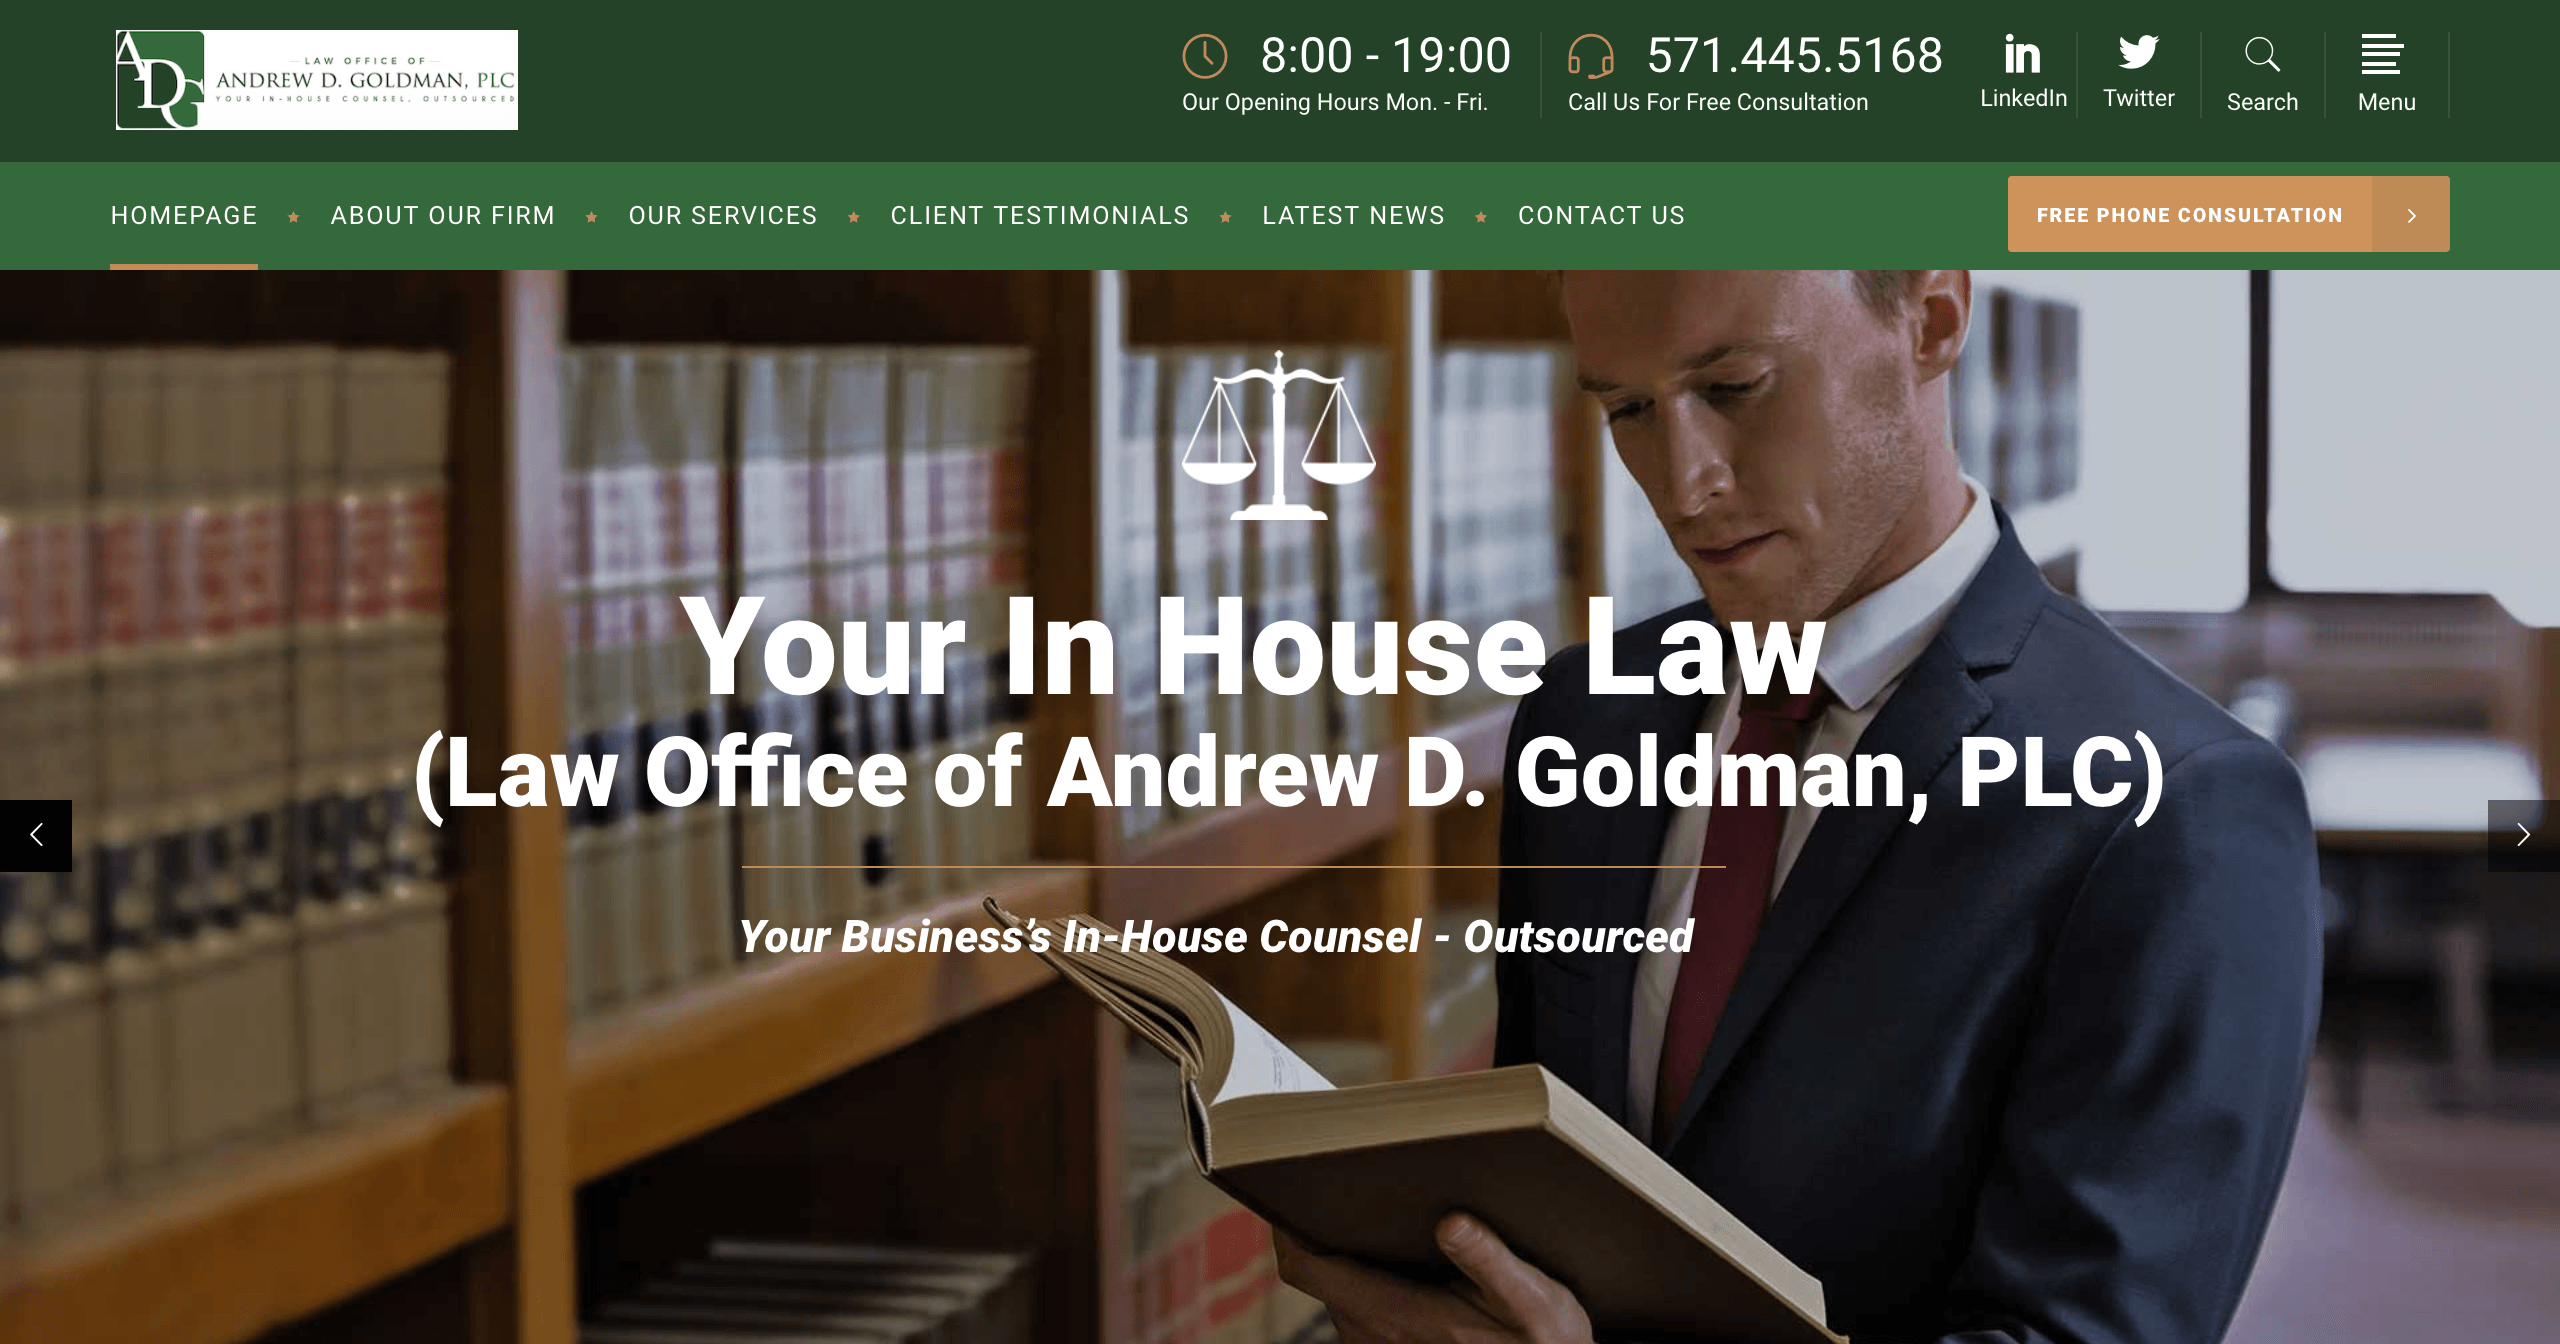 Andrew Goldman Law